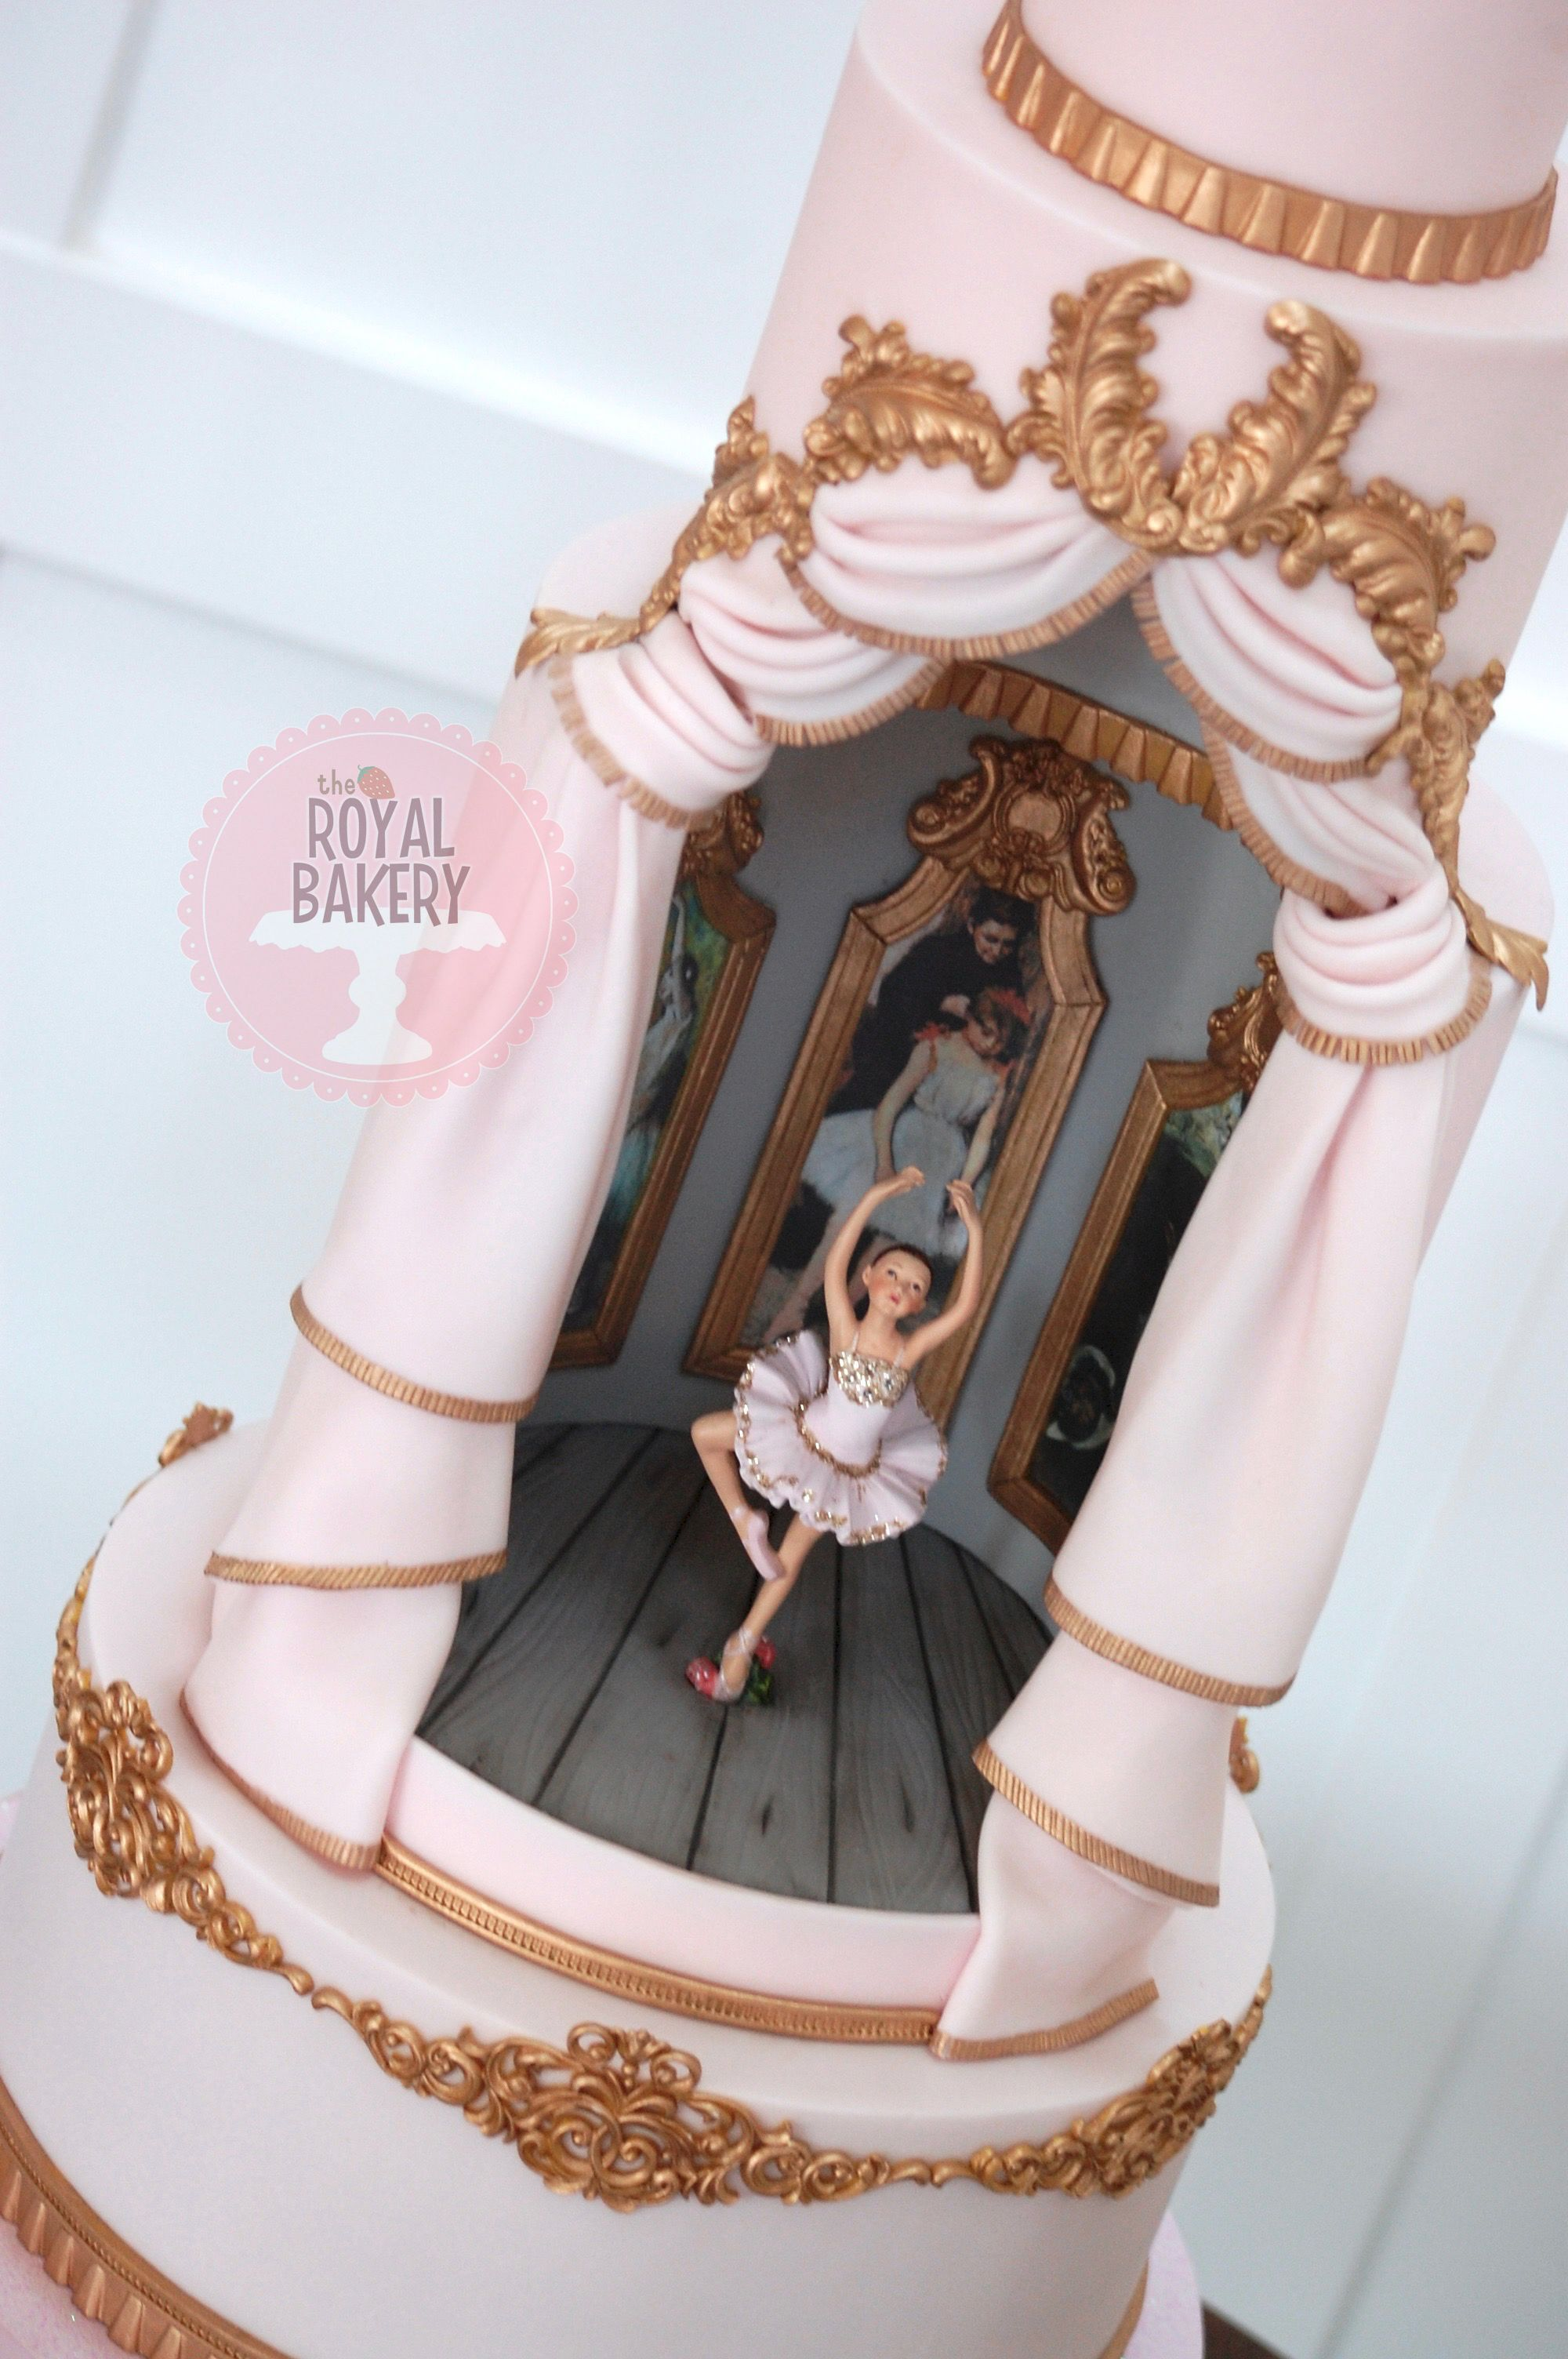 Based On The Designs By Cake Opera Co The Royal Bakery Ballet